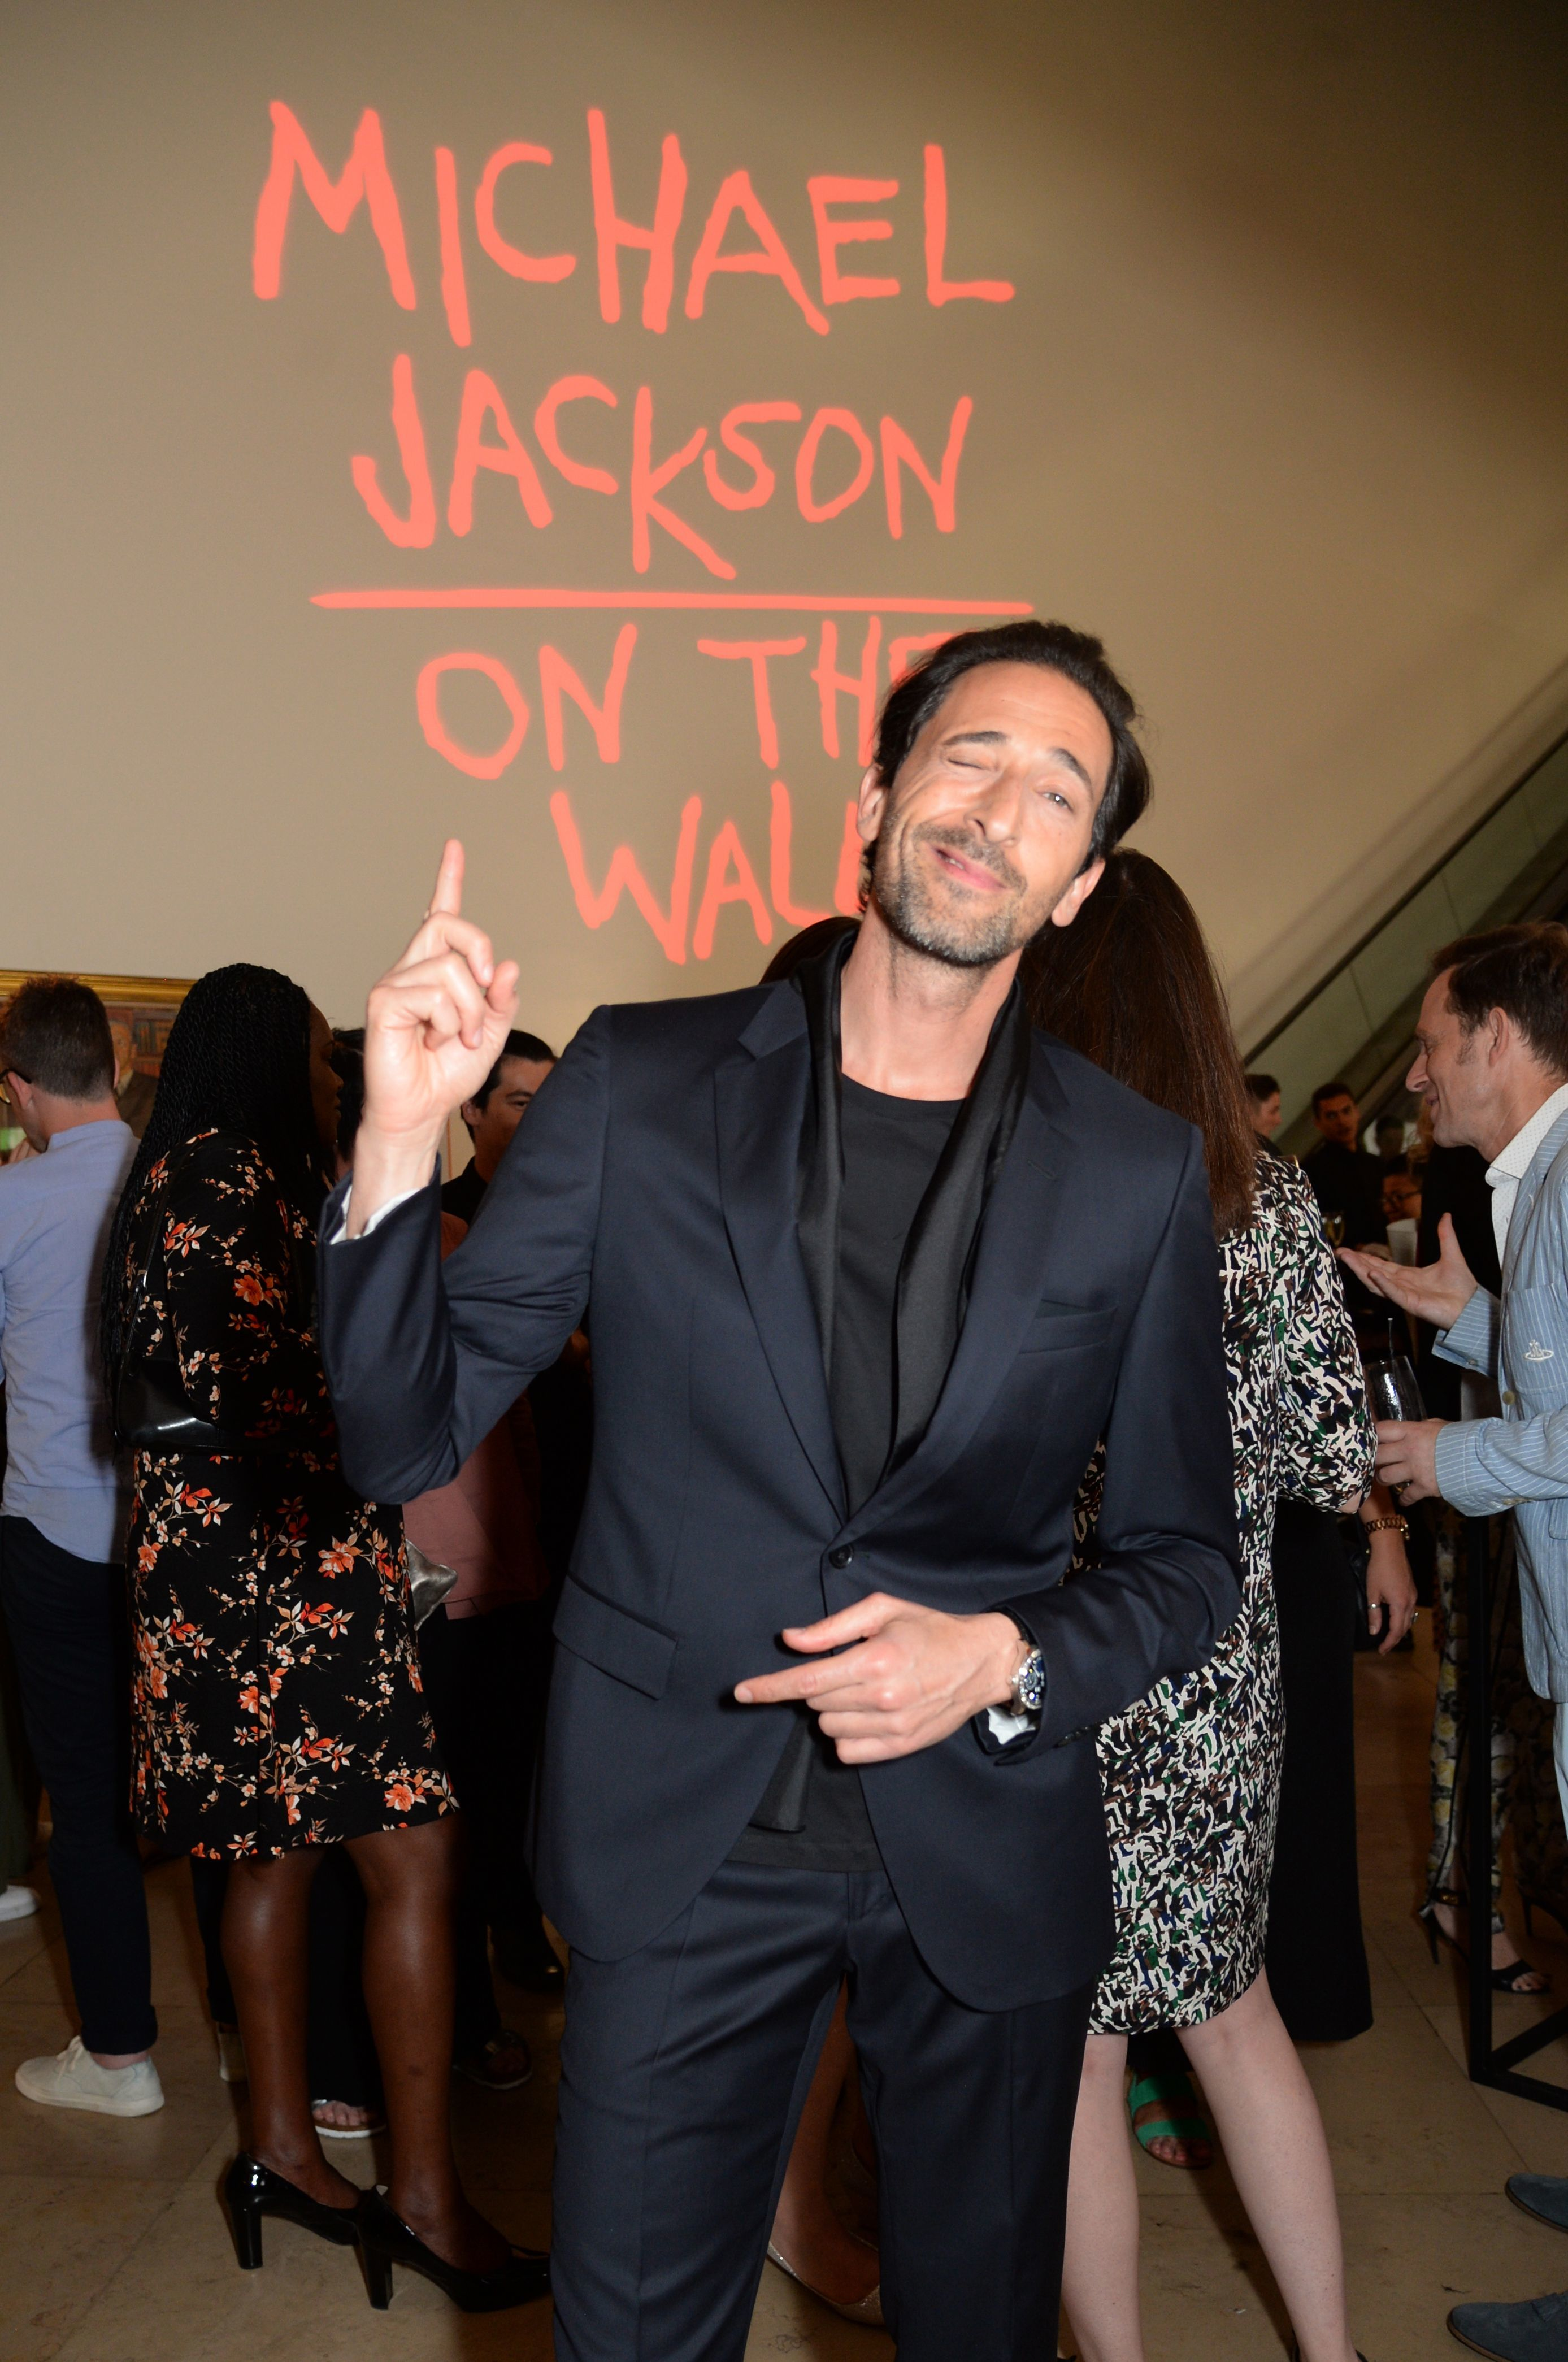 Adrien Brody attends the Michael Jackson: On The Wall exhibition private view in London on June 26, 2018.